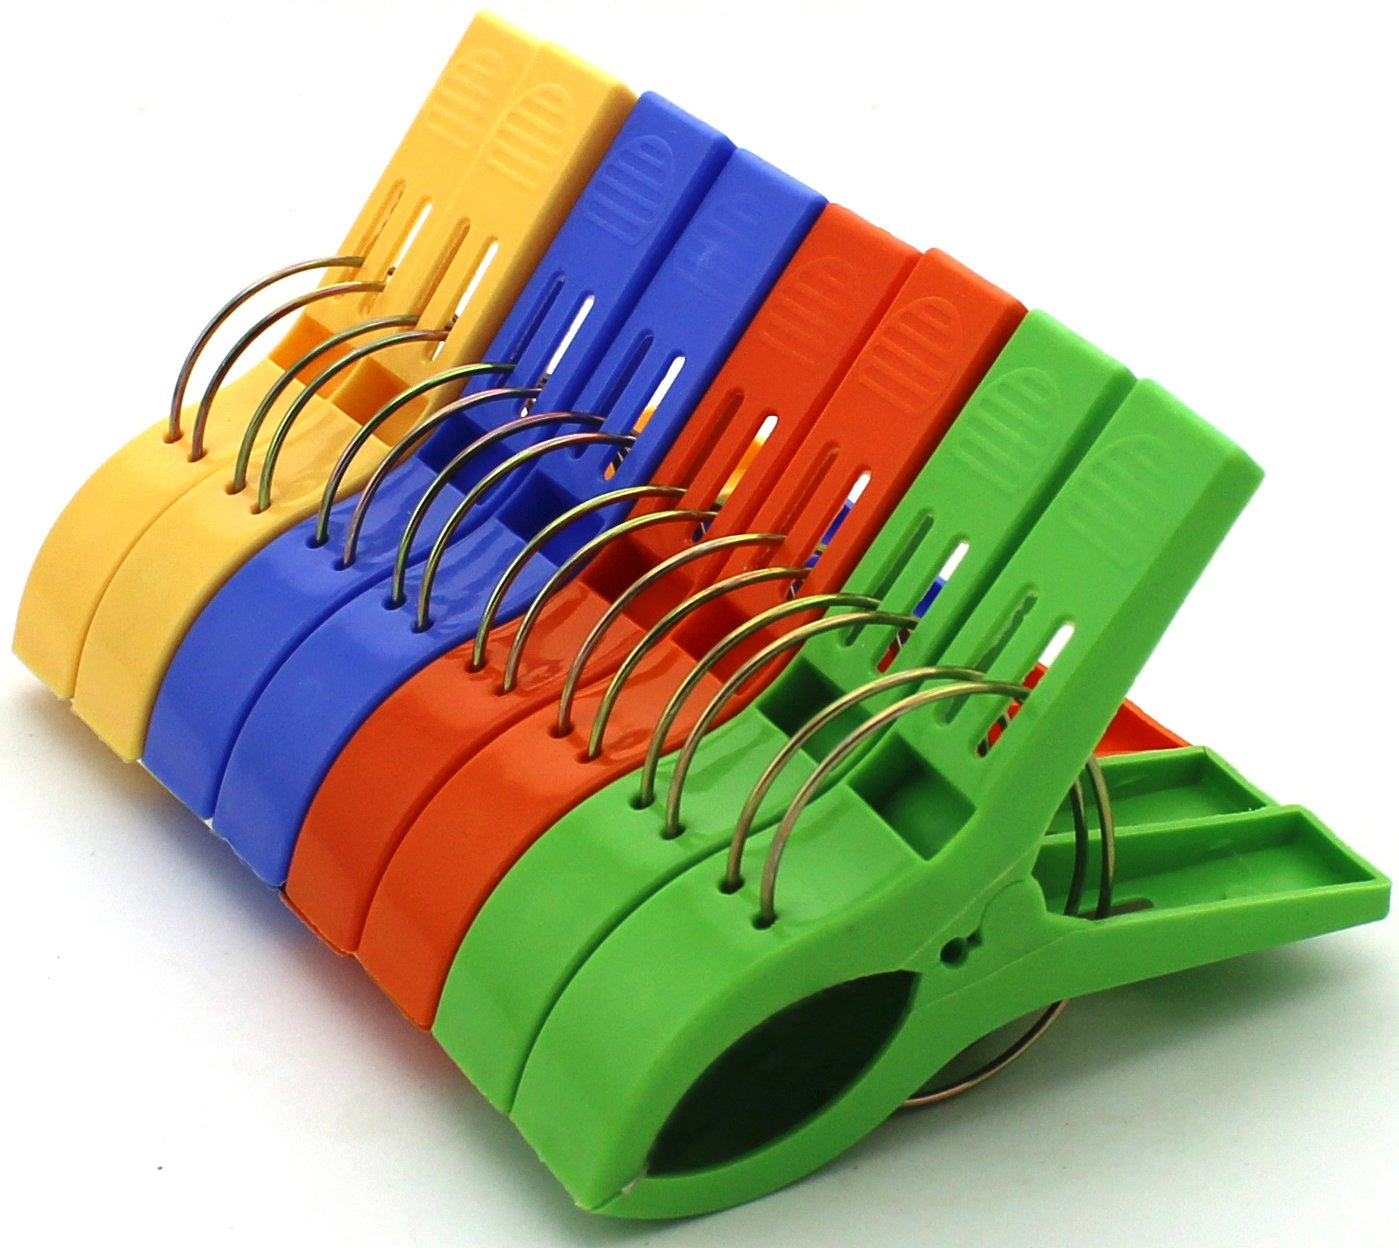 chair clips for beach towels office chairs max weight 150kg zicome set of 8 bath towel in 4 fun bright